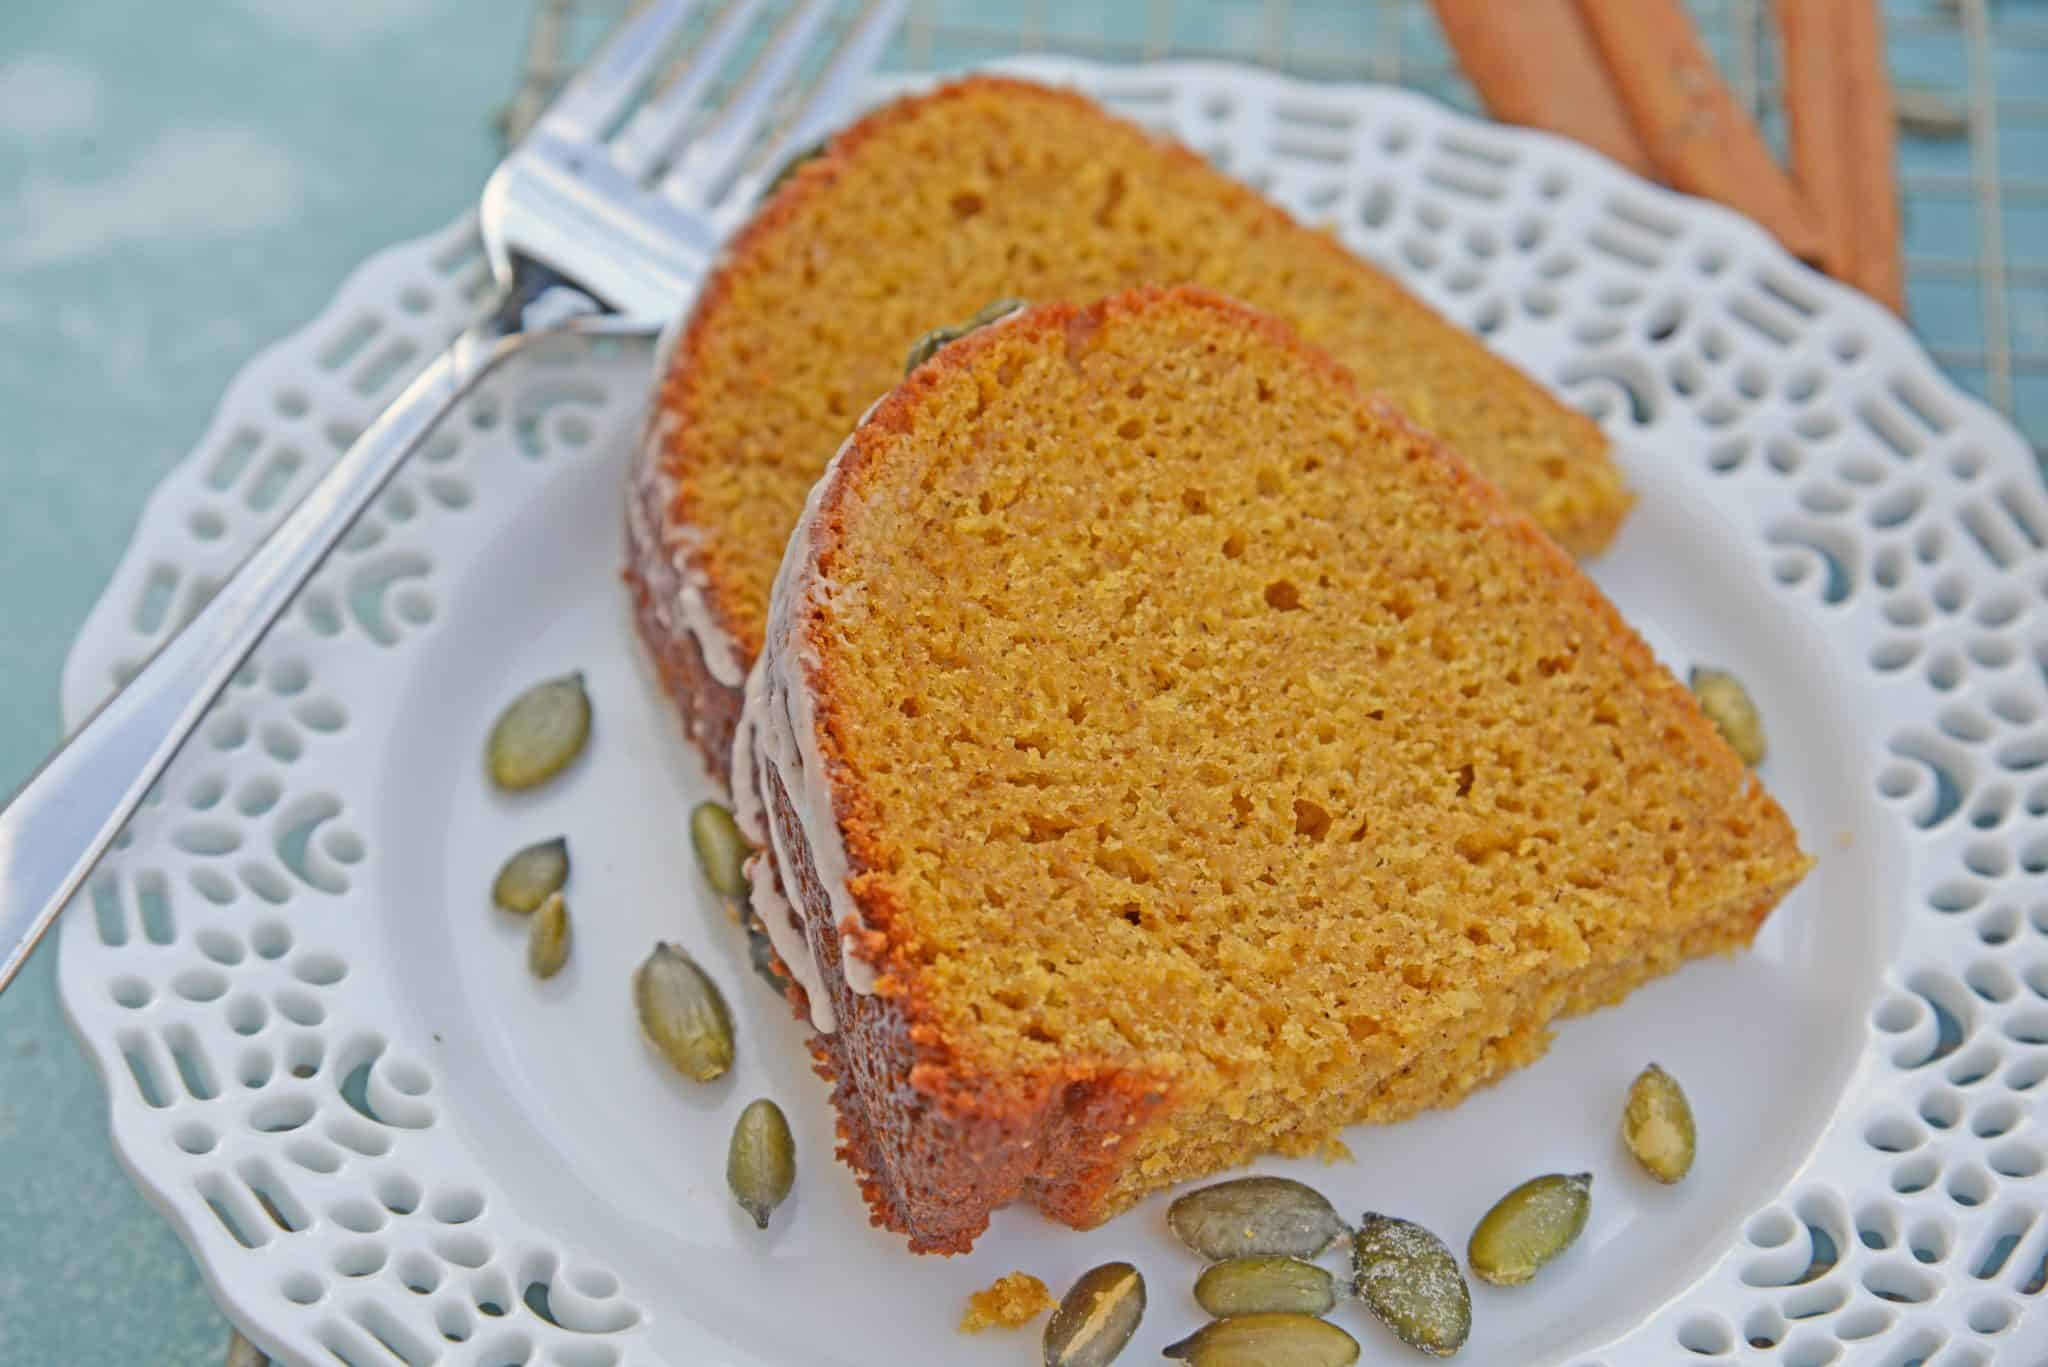 Copycat Starbucks Pumpkin Bread is a moist and flavorful pumpkin pound cake perfect for pairing with a pumpkin spice coffee! #pumpkinbread #pumpkinpoundcake www.savoryexperiments.com